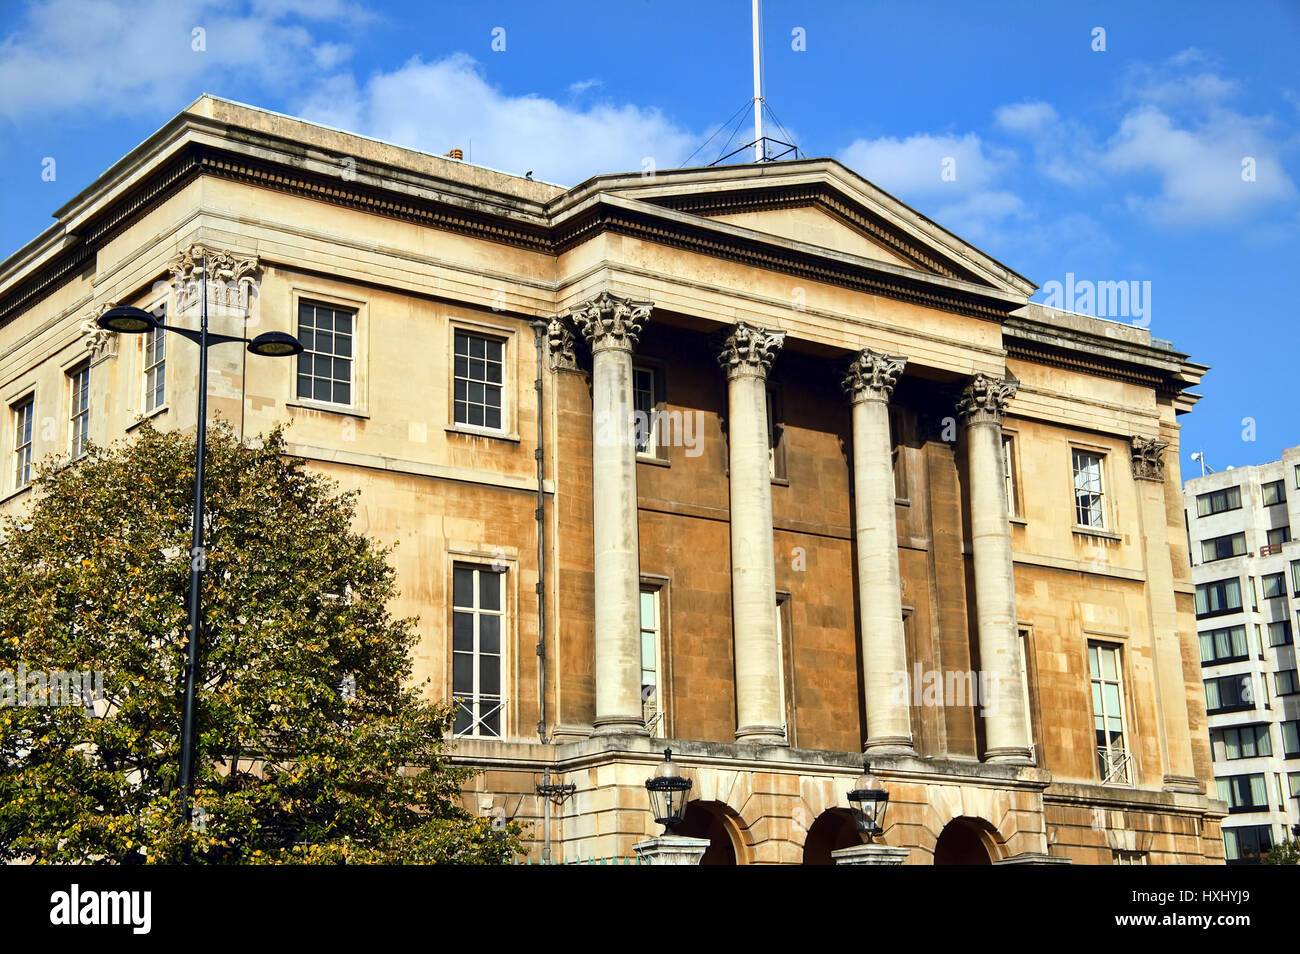 London, UK, October, 19 2007 : Apsley House also known as Number One was the  residence of The Duke of Wellington - Stock Image